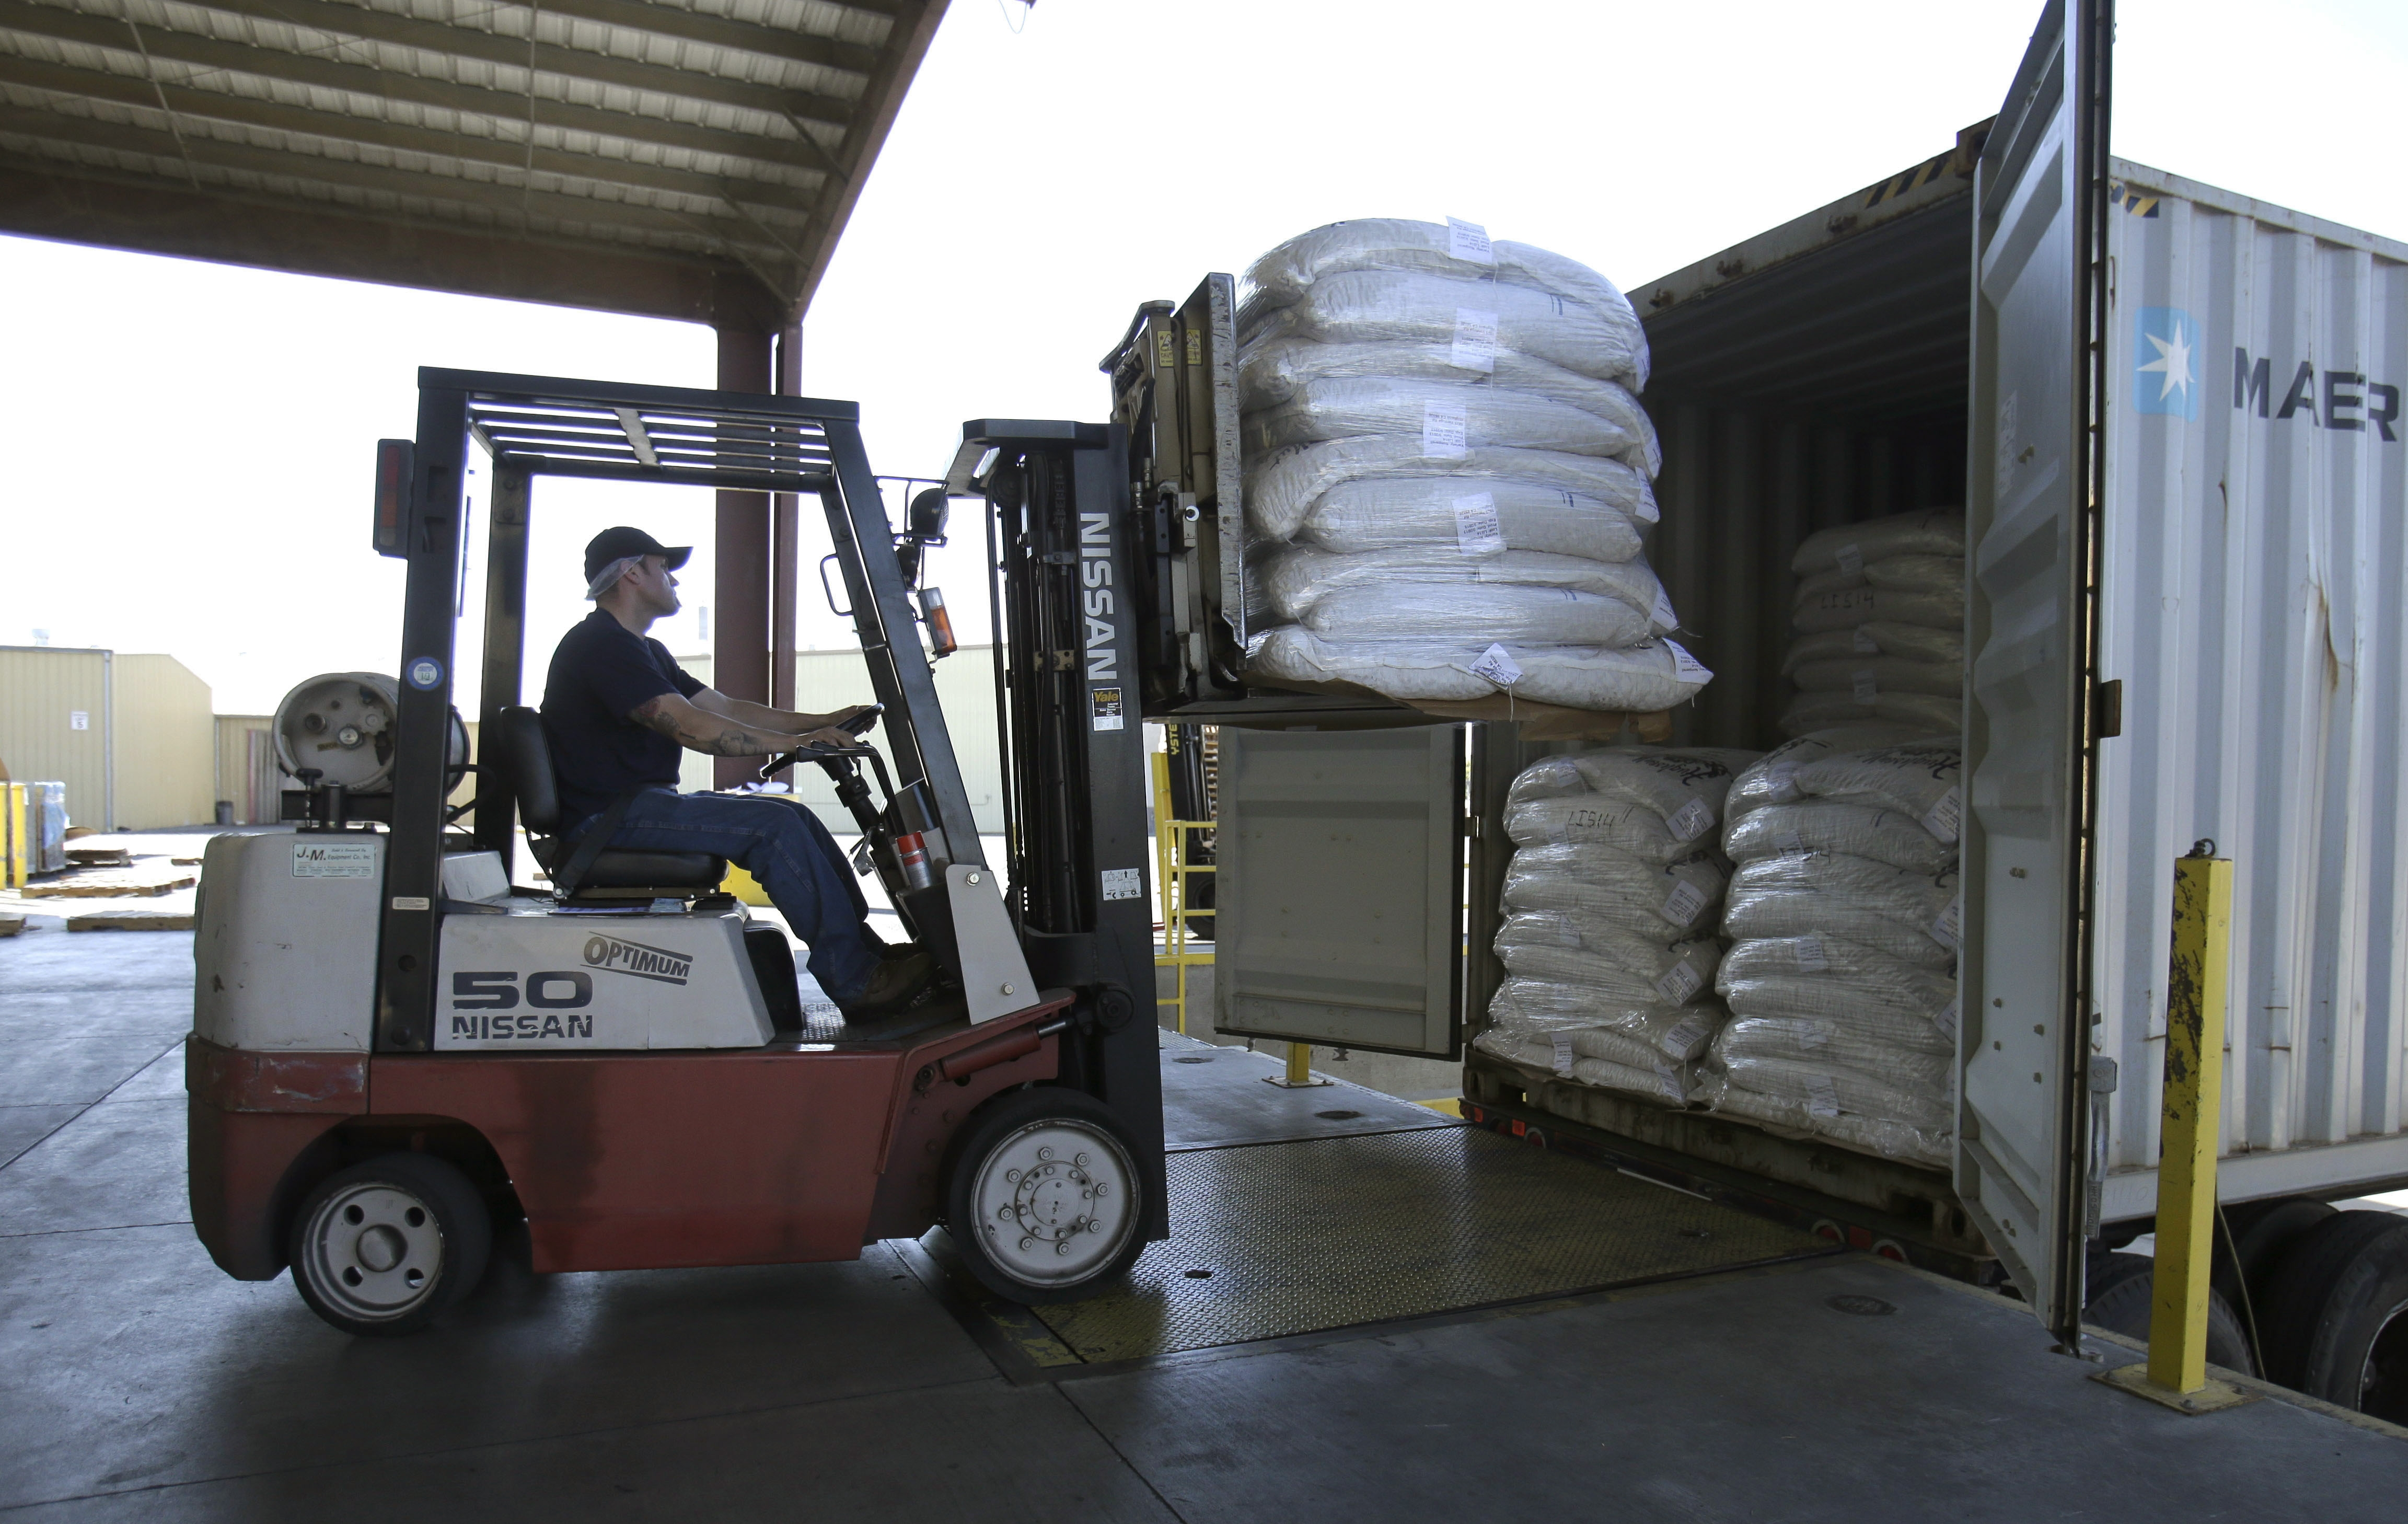 Bags of almonds are loaded into a truck at Hughson Nut, Inc., in Livingston, Calif. Hughson has been a victim of con men posing as truckers in order to steal freight.